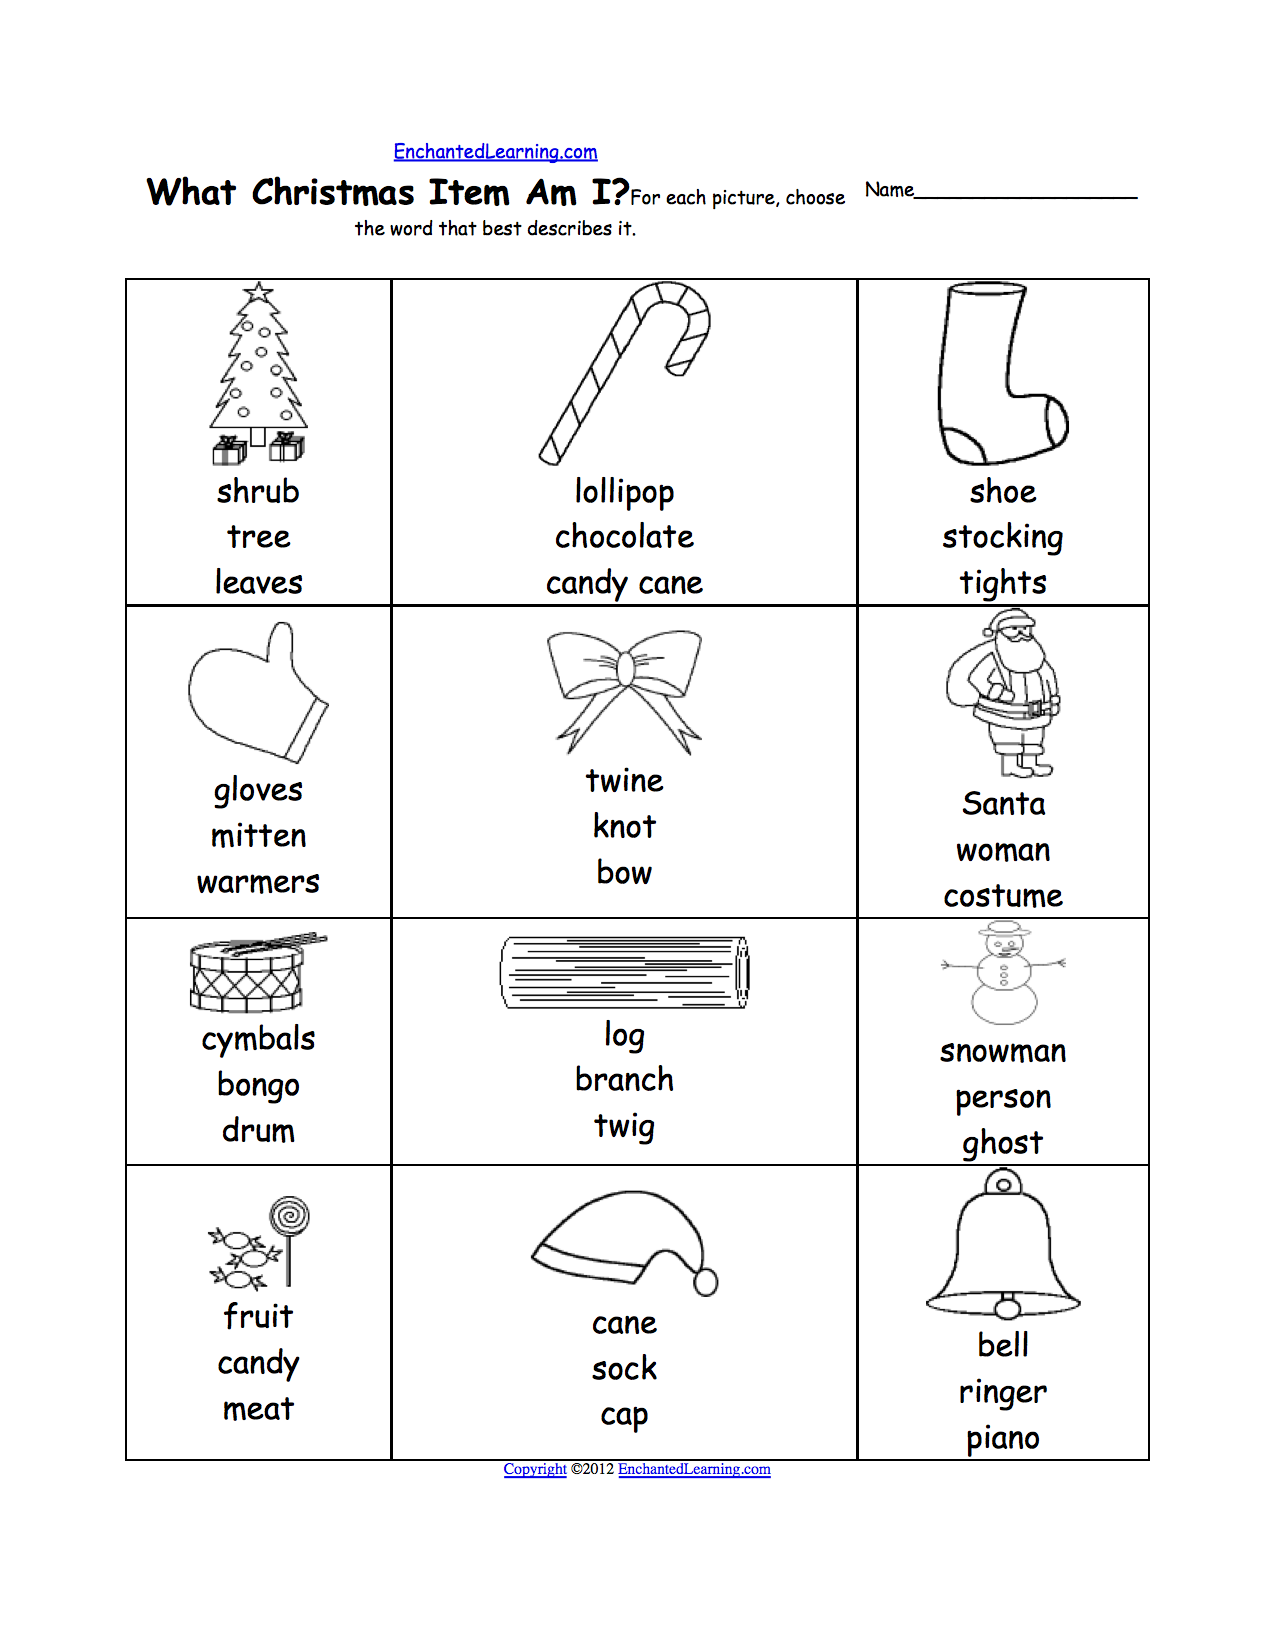 Worksheets Christmas Worksheet christmas activities spelling worksheets enchantedlearning com